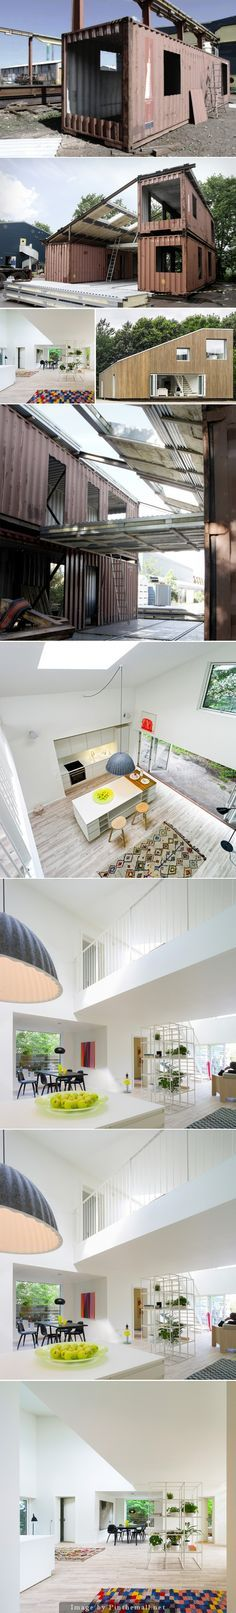 Upcycled Shipping Container House - Find out how to create one here ...